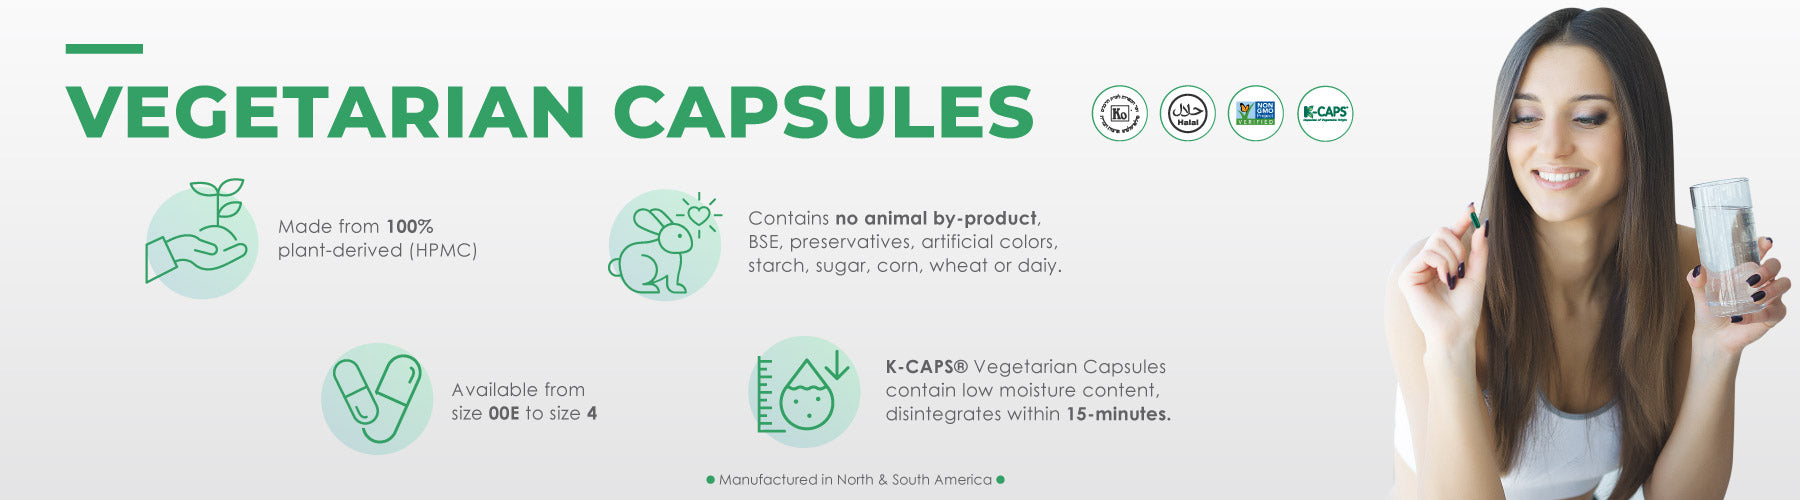 Vegetarian Capsules in Colors by Capsuline